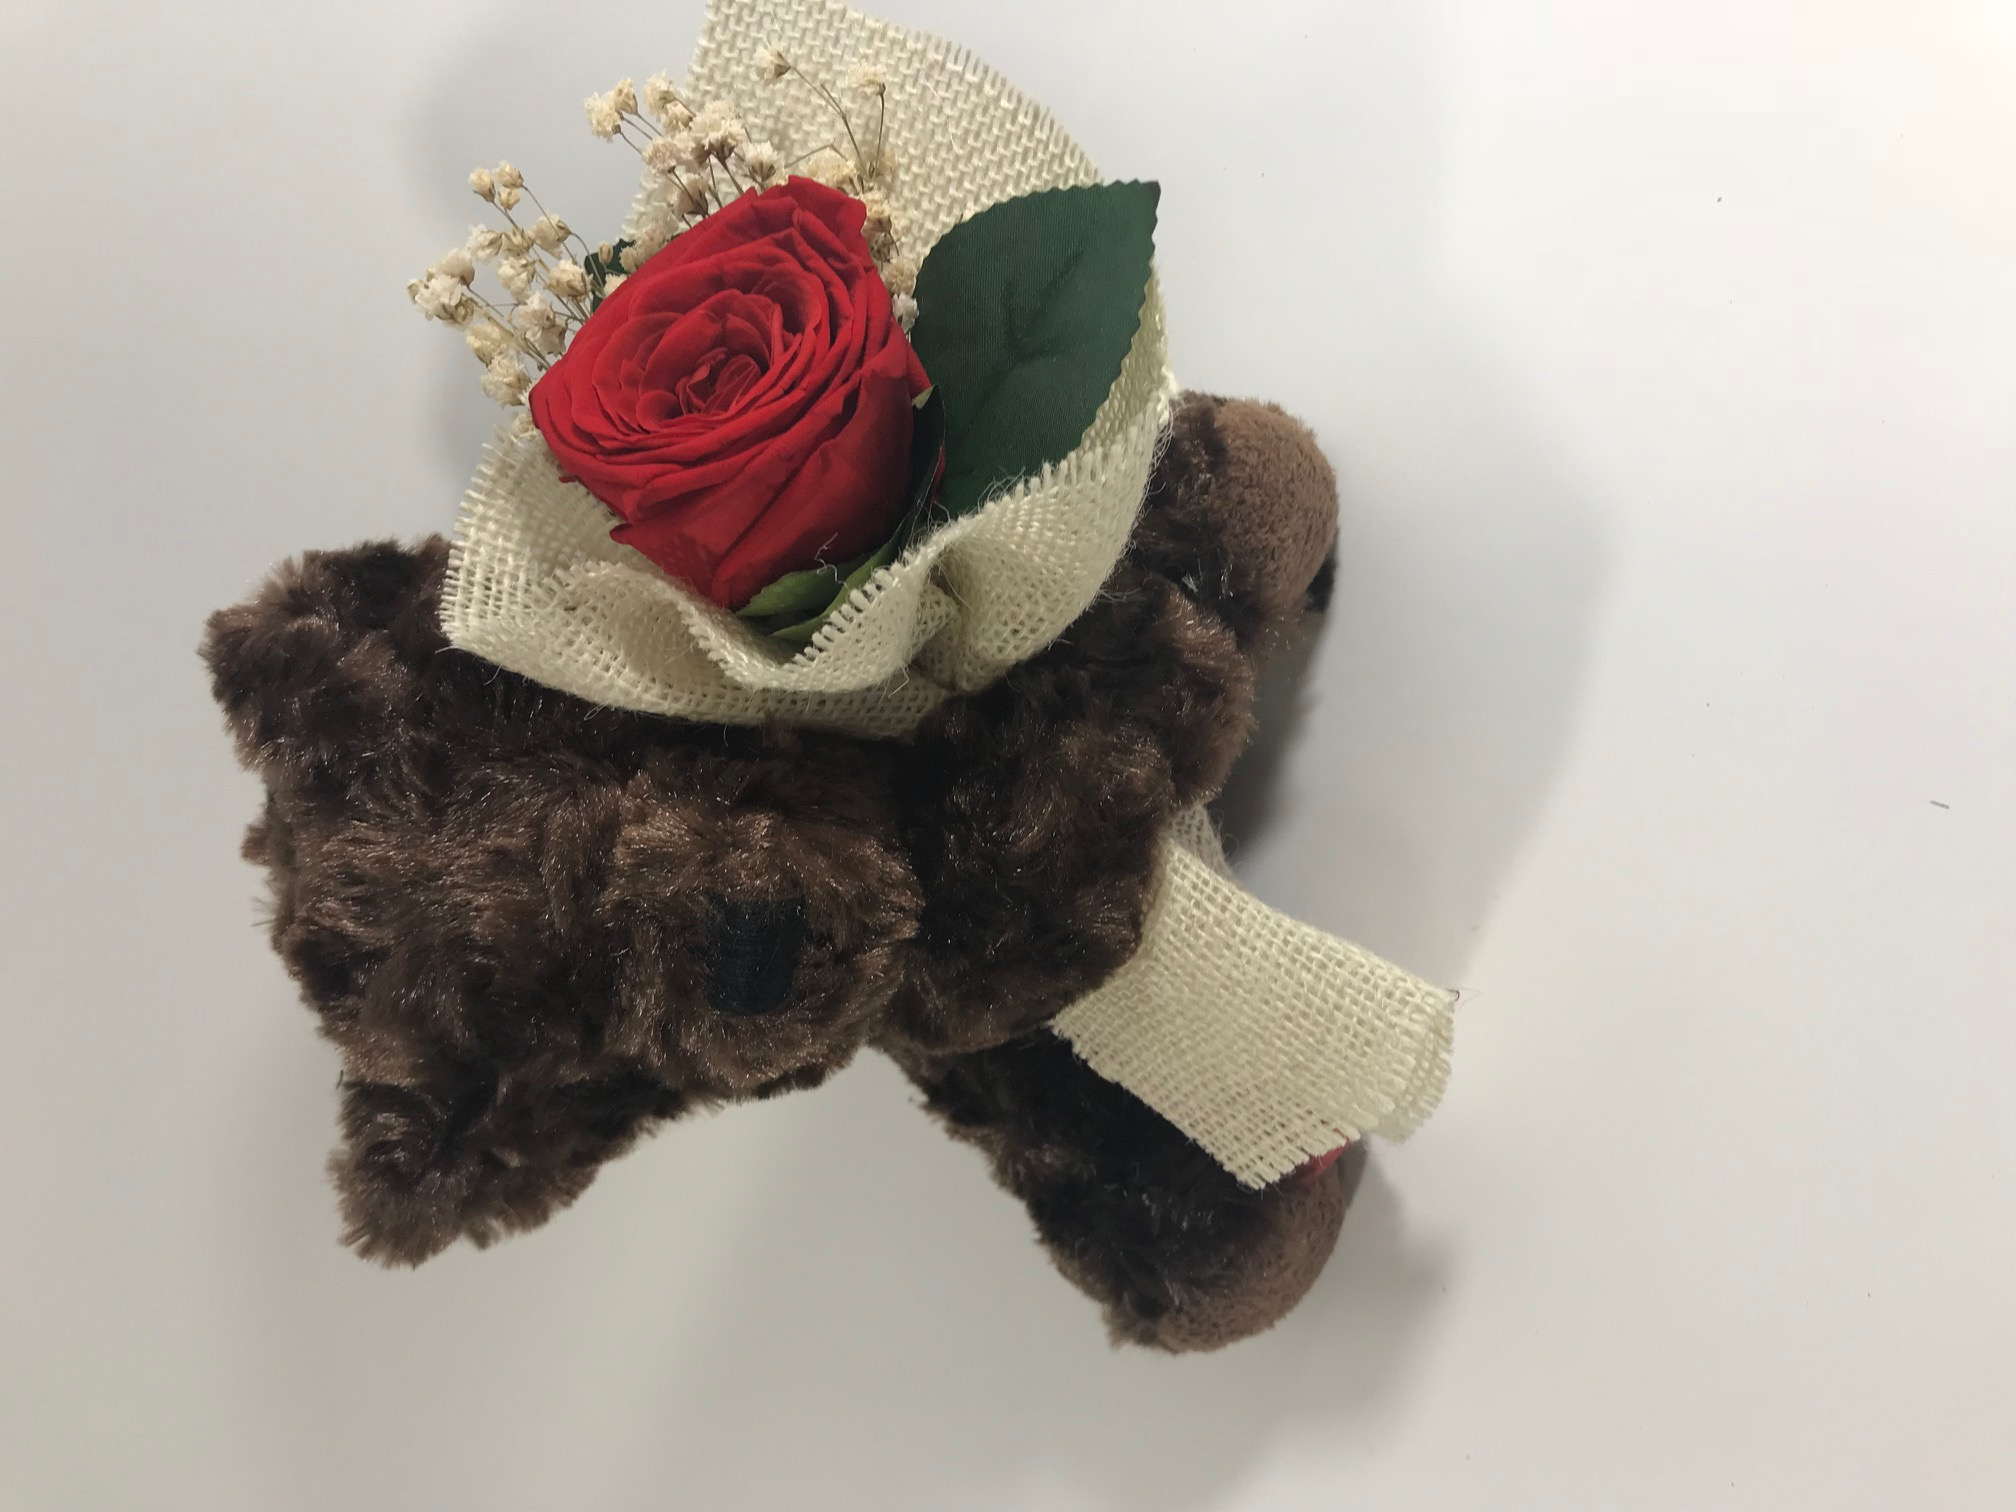 Darkbrown Bear (18cm) with Last4ever Real Rose